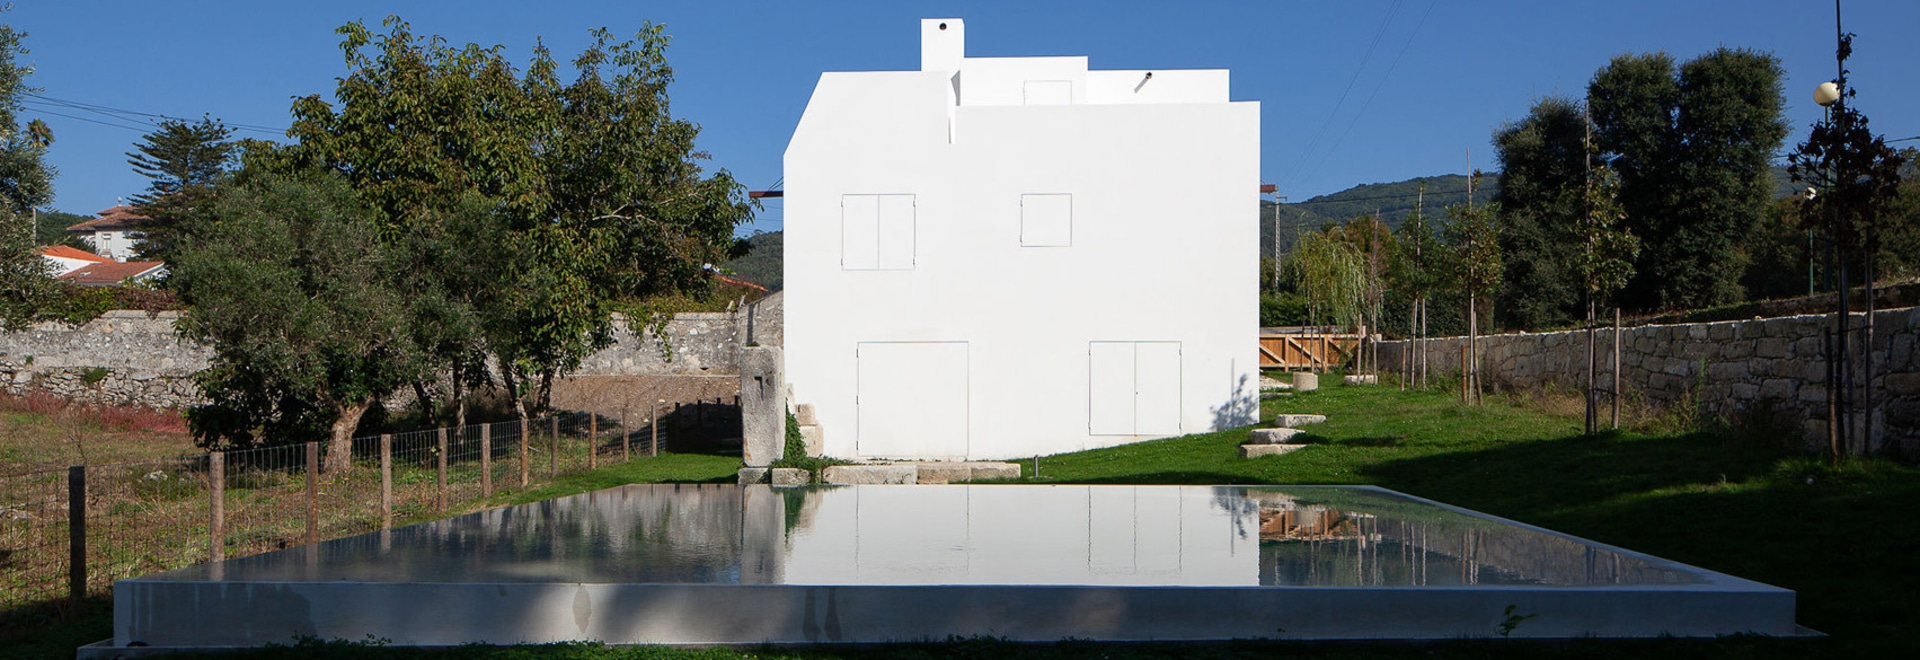 "Guilherme Machado Vaz designs geometric white house as ""abstract sculpture"""